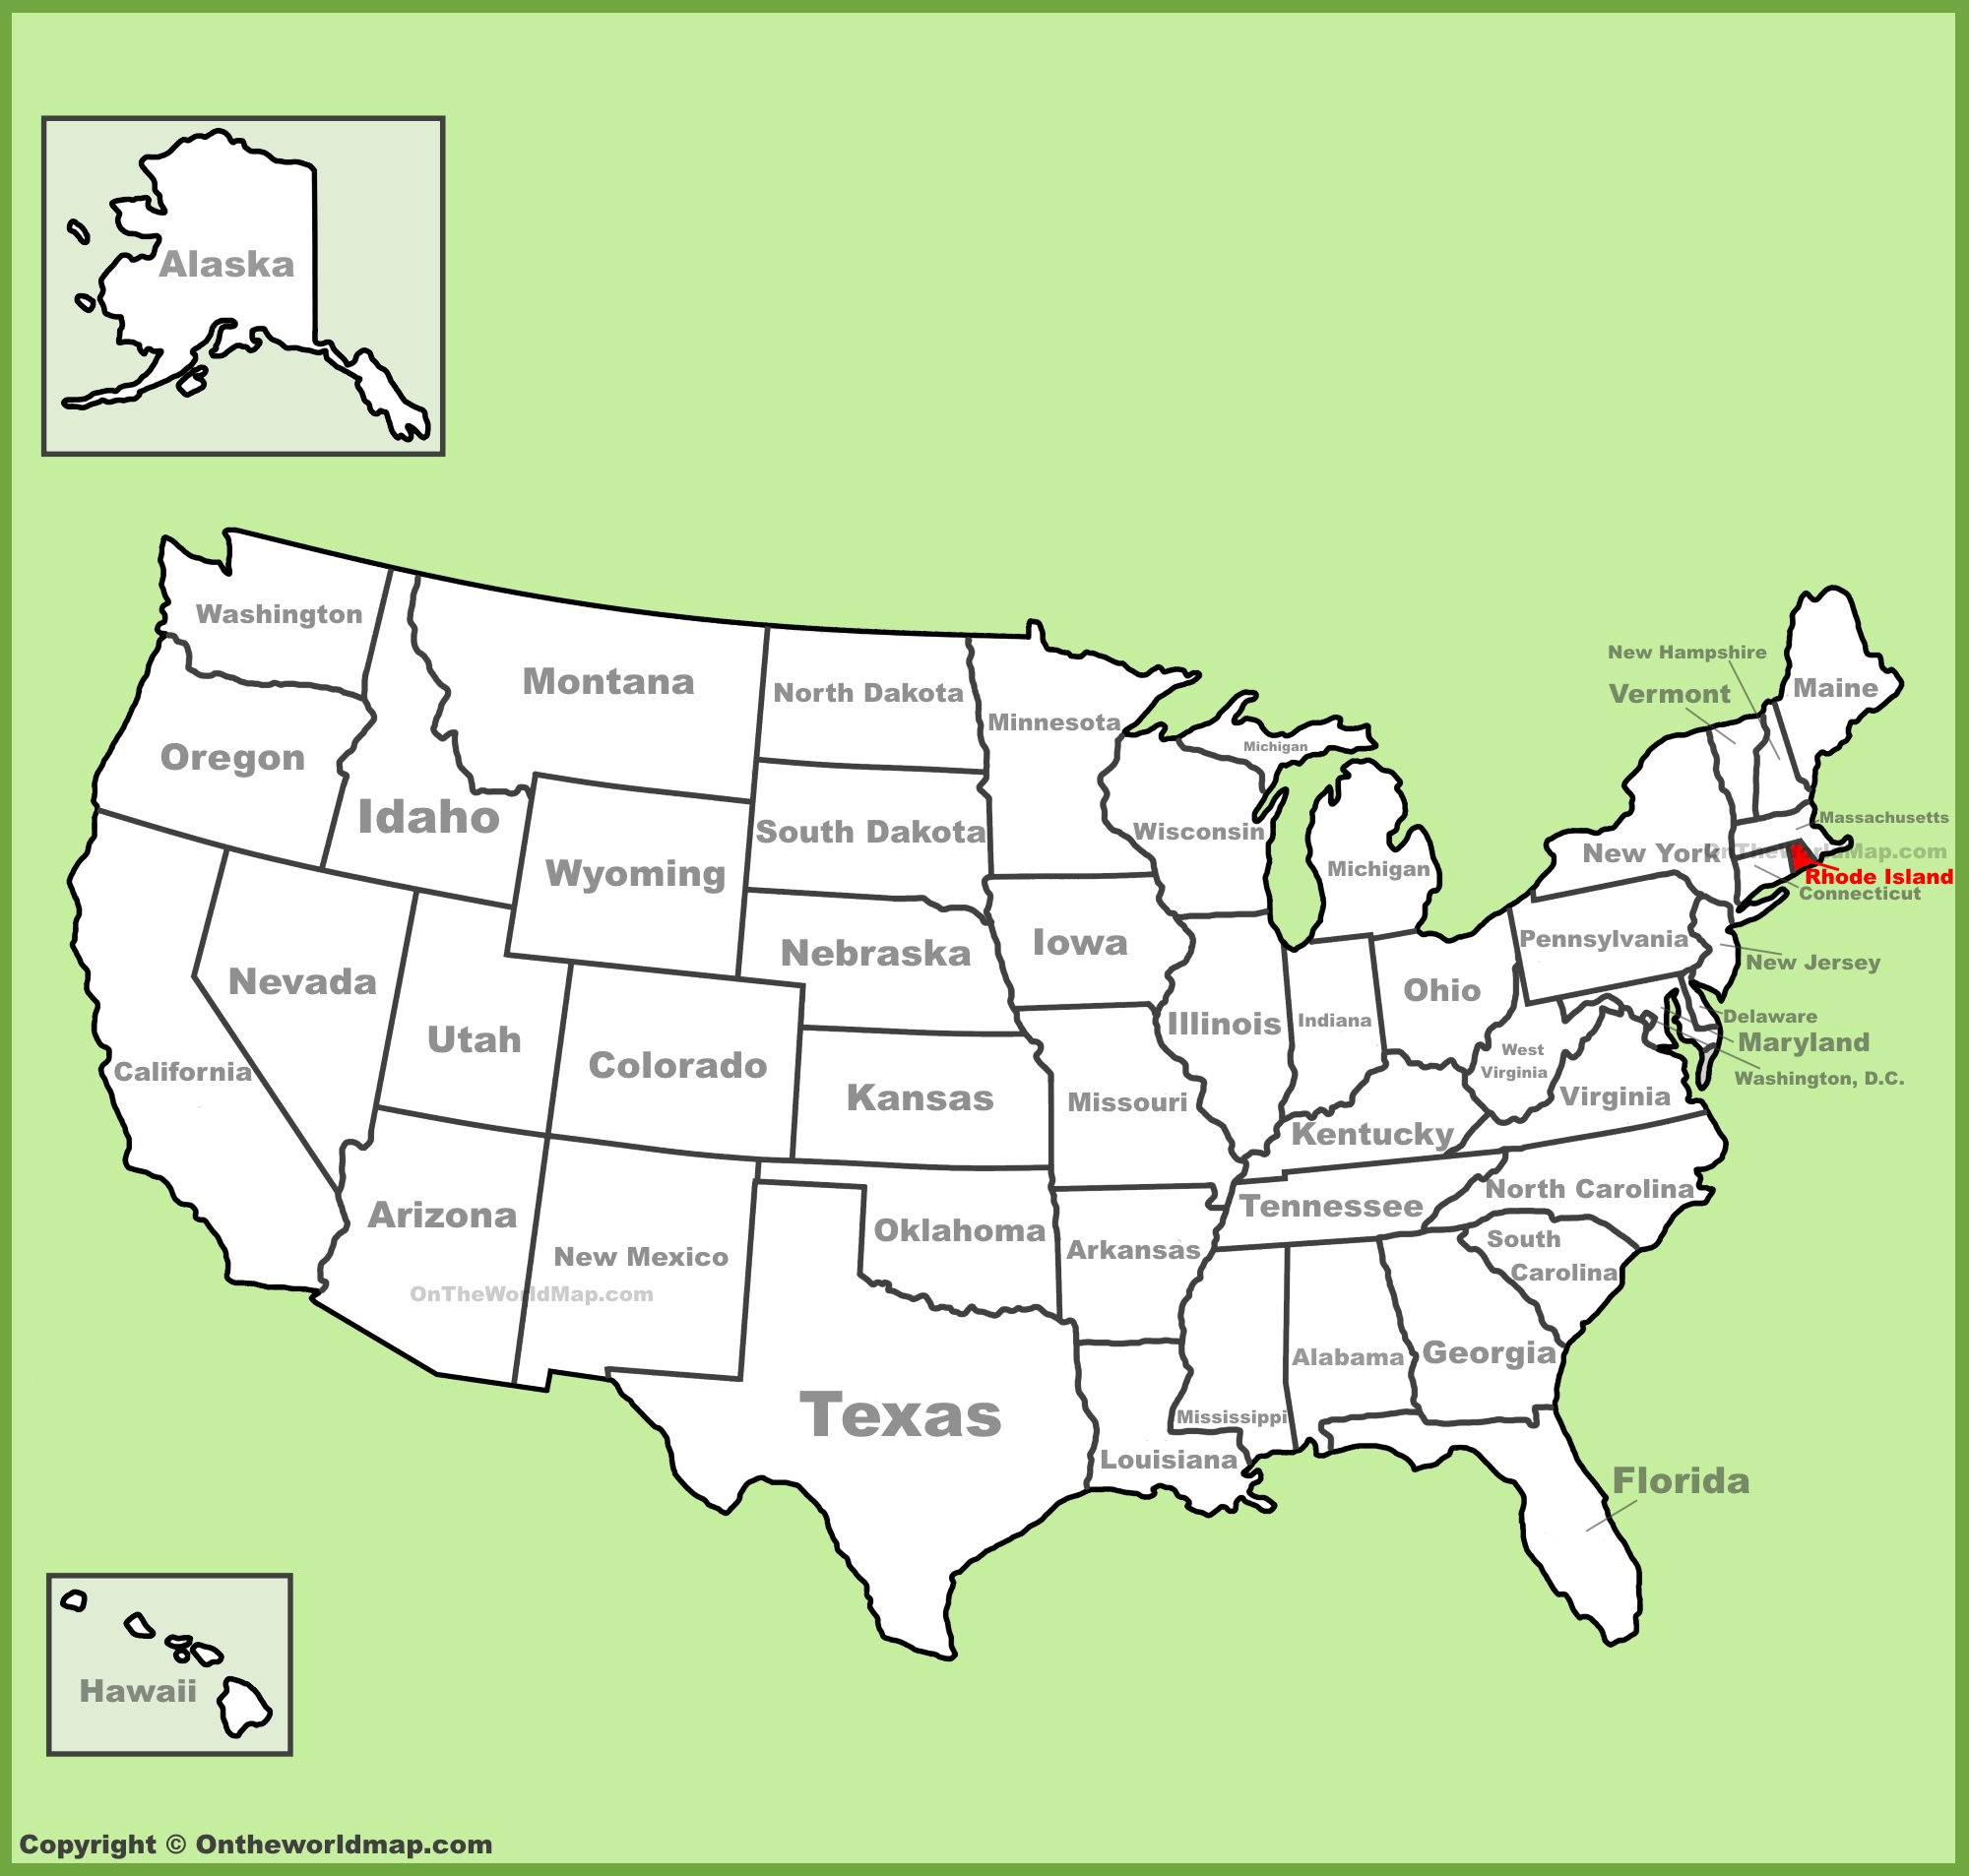 Rhode Island Location On The US Map - Rhode island on the us map